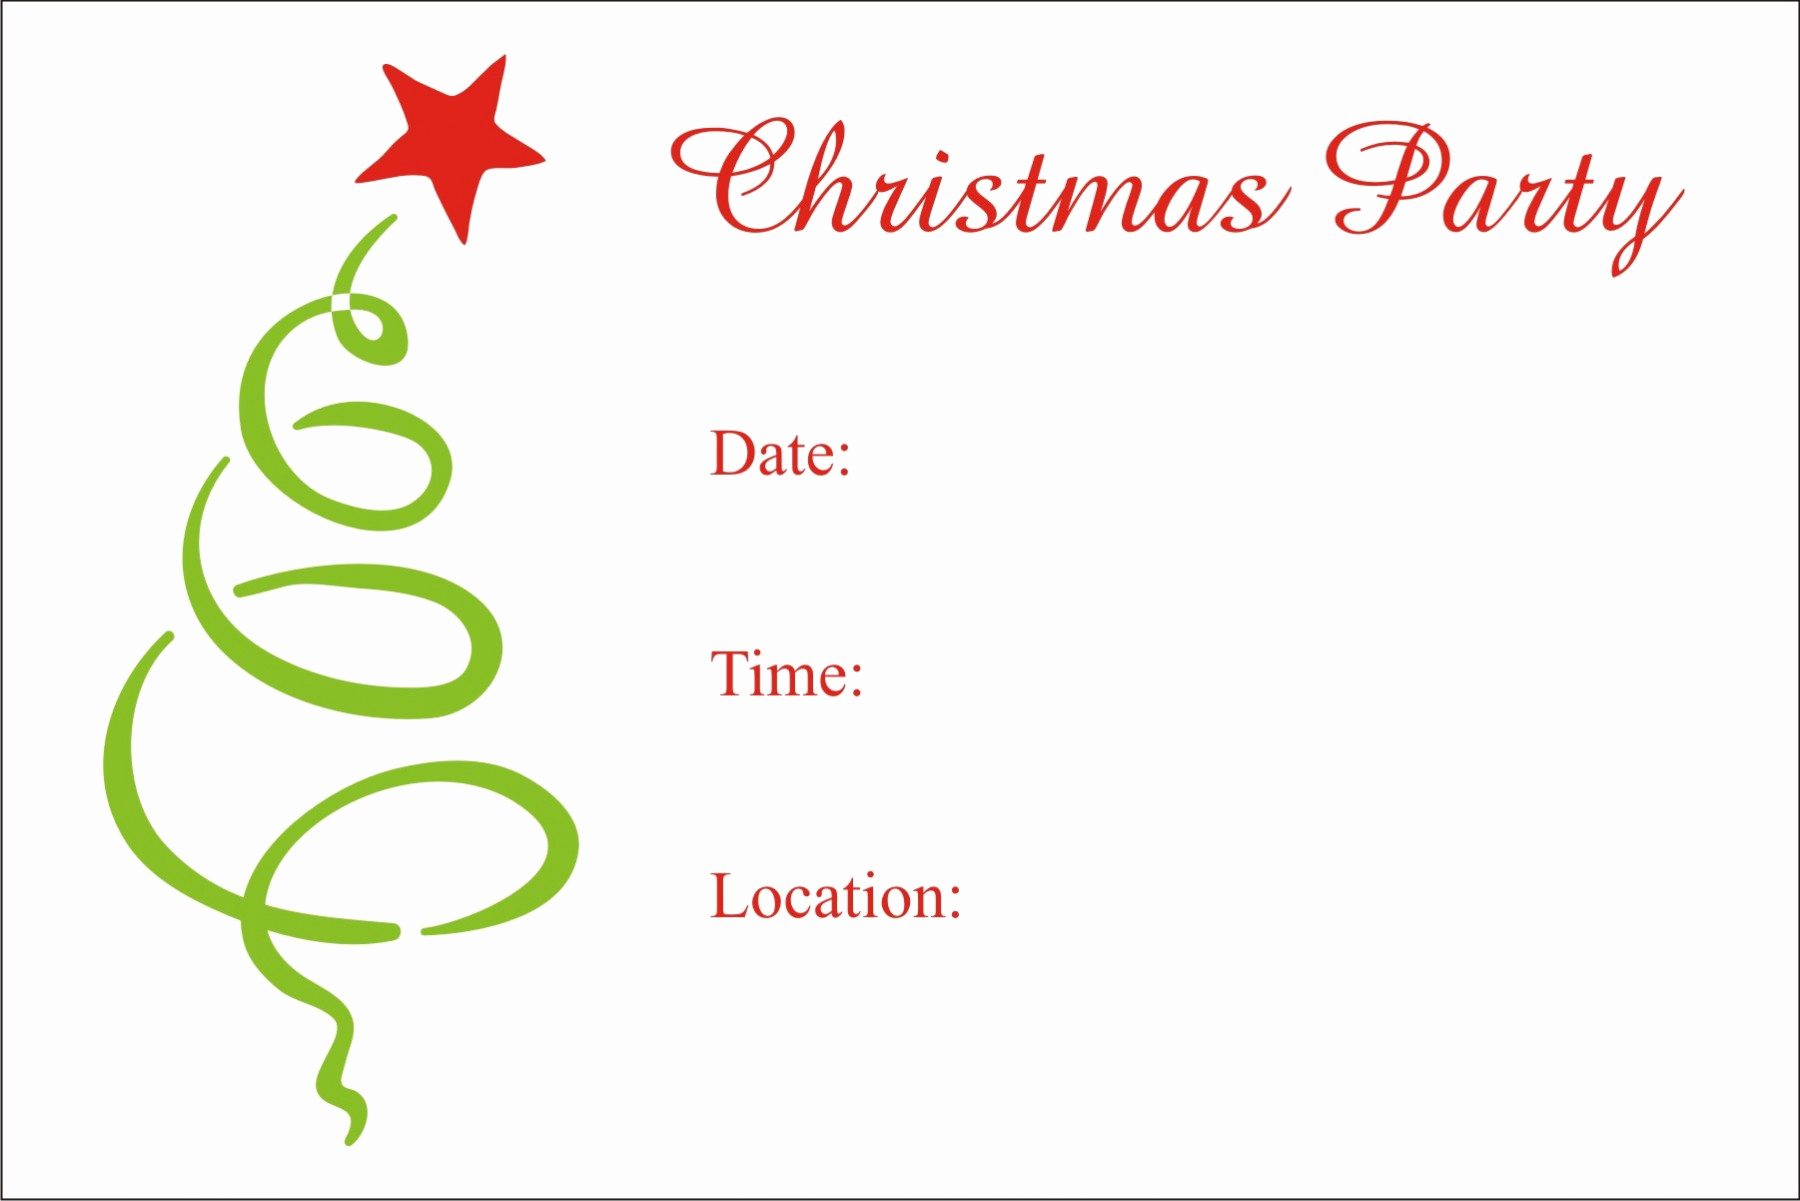 Free Christmas Party Invitation Templates Inspirational Christmas Party Free Printable Holiday Invitation